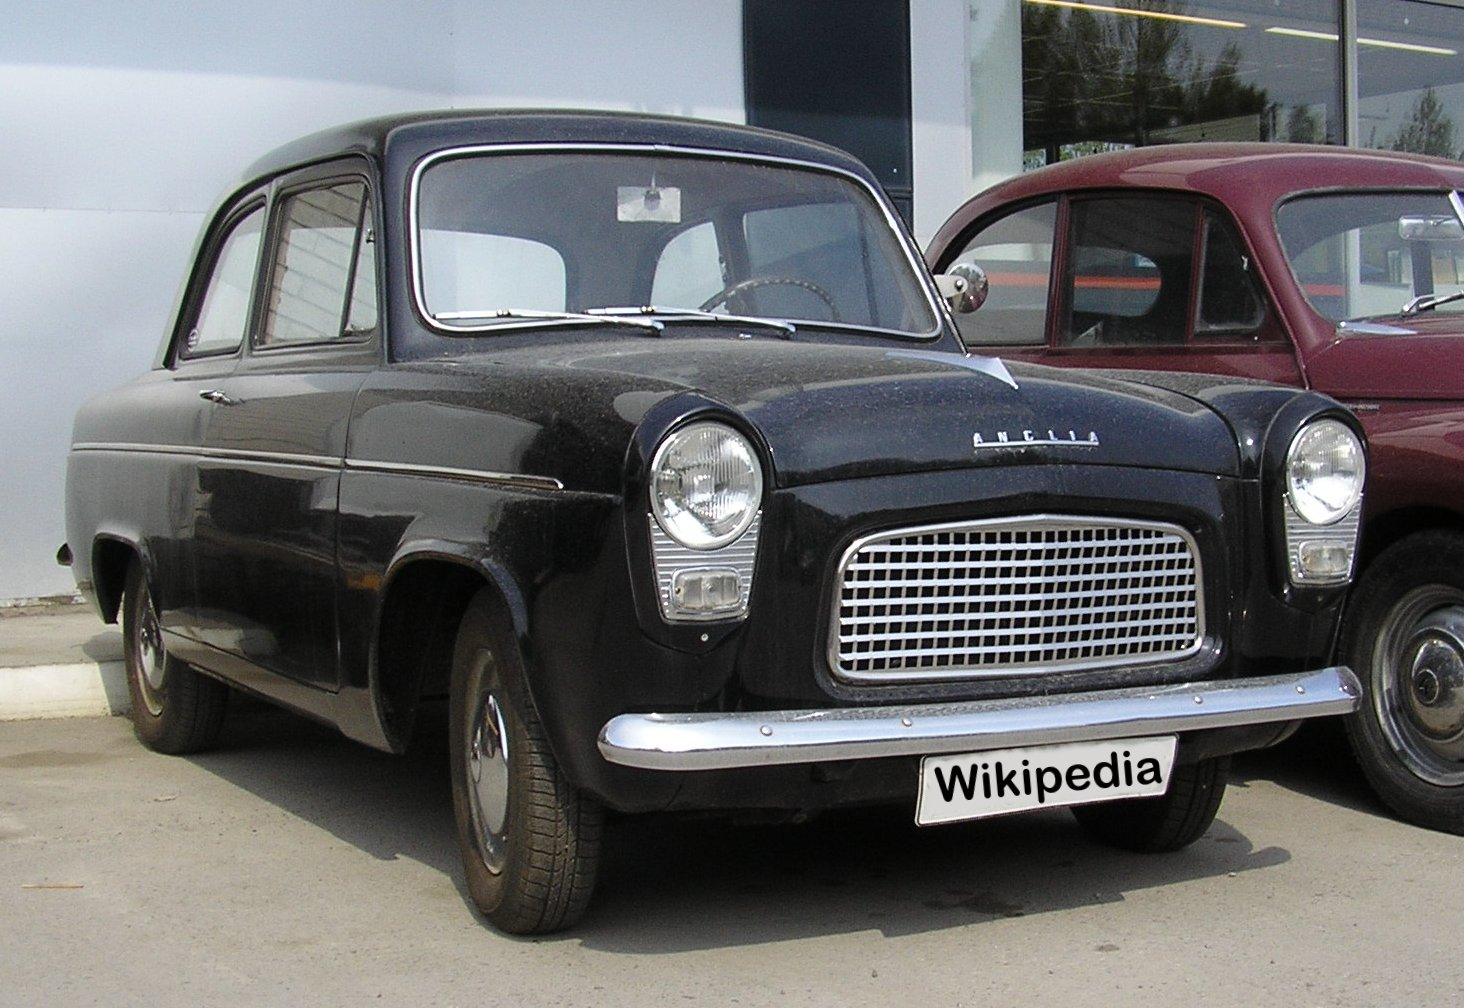 ford anglia panel van for sale with Ford Anglia on File 1942 ford anglia a54a coupe utility  8705965336 besides Anglia Ford Sale further Ford Anglia together with 280960 1948 Ford Thames Panel Truck Gasser Project 1932 1940 Nostalgia Drags Anglia in addition 419594 Pro Street Rat Rod 47 Ford Pickup Rat Racer Thingy Ebay.